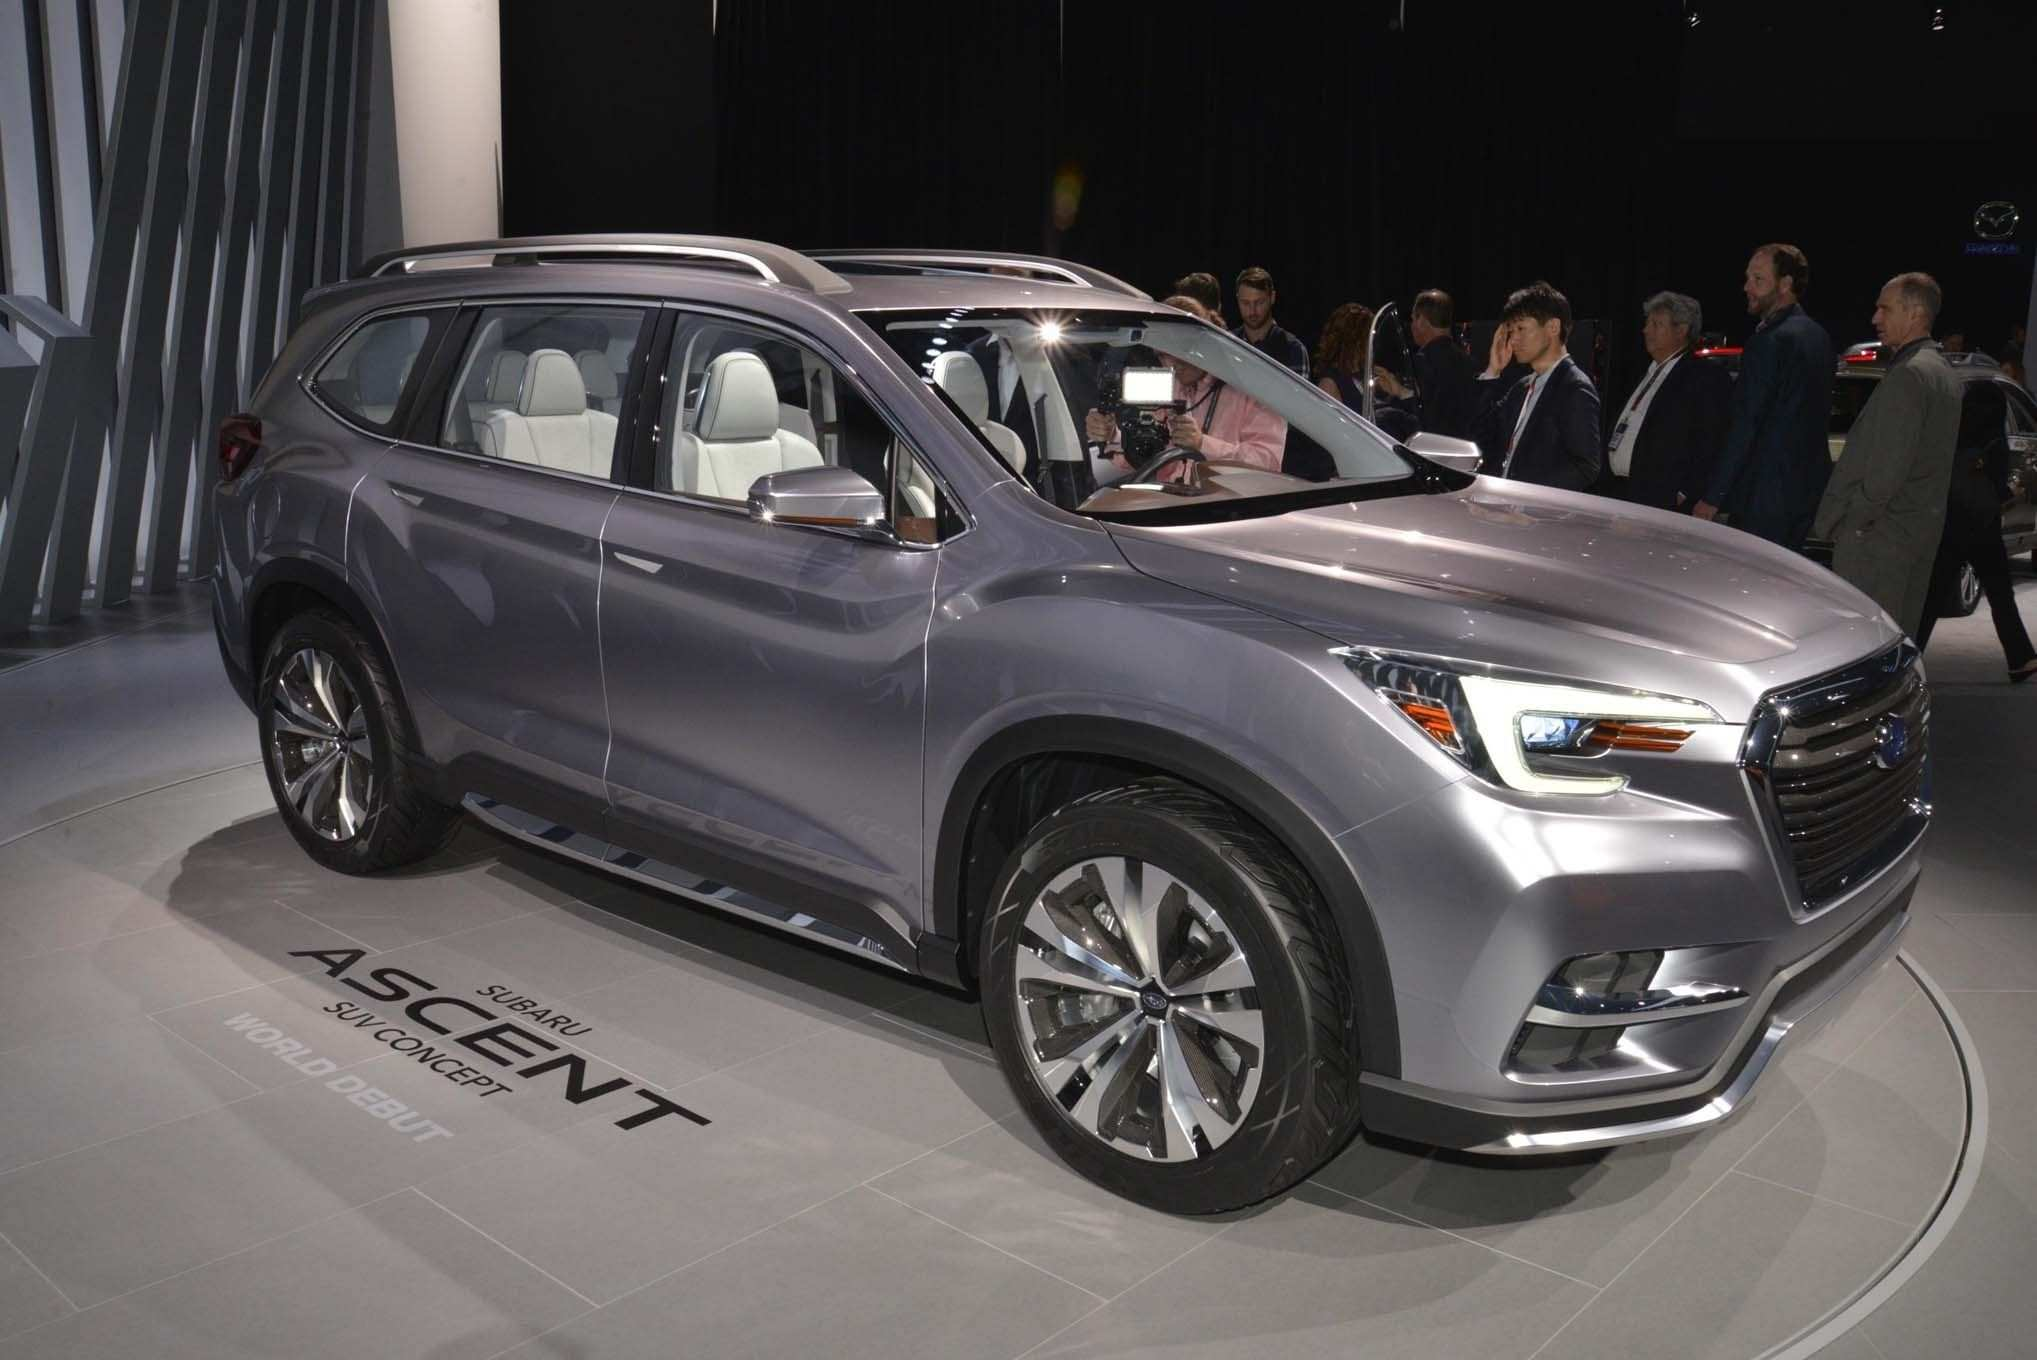 27 Best Review 2019 Subaru Outback Changes Ratings for 2019 Subaru Outback Changes